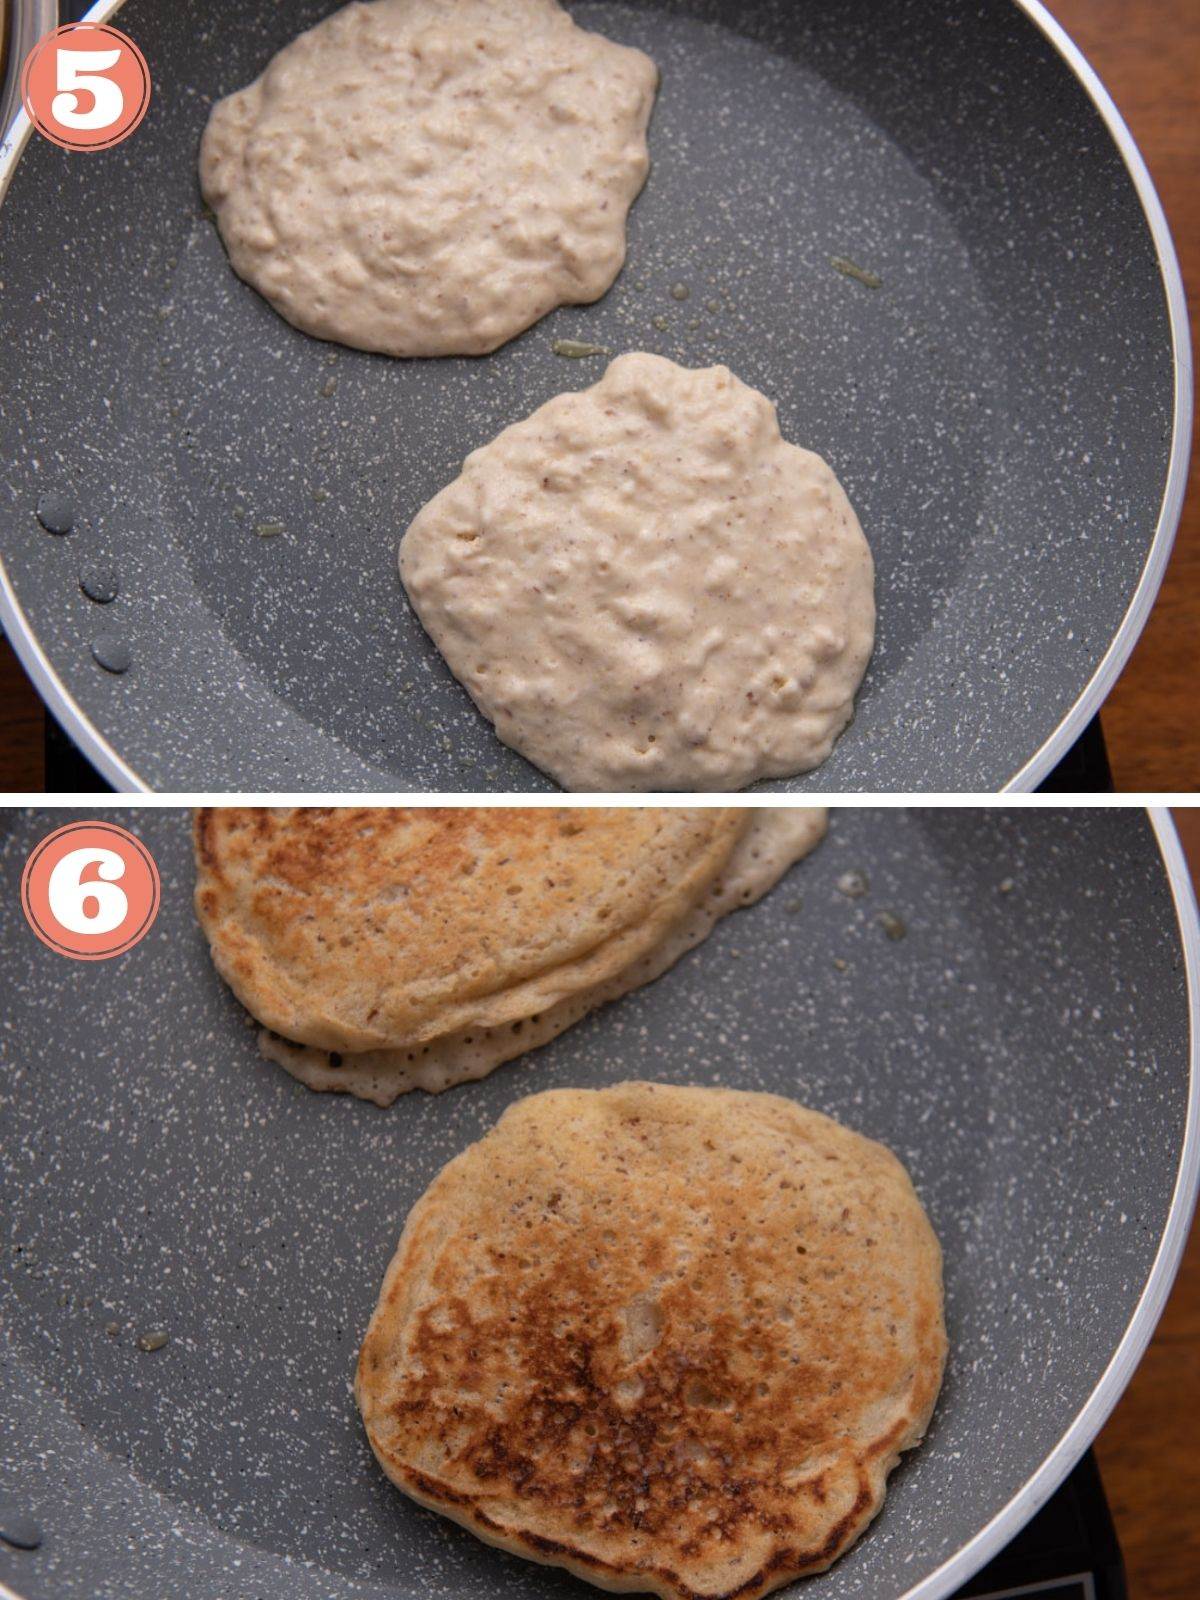 Steps 5 and 6 to make vegan panakes